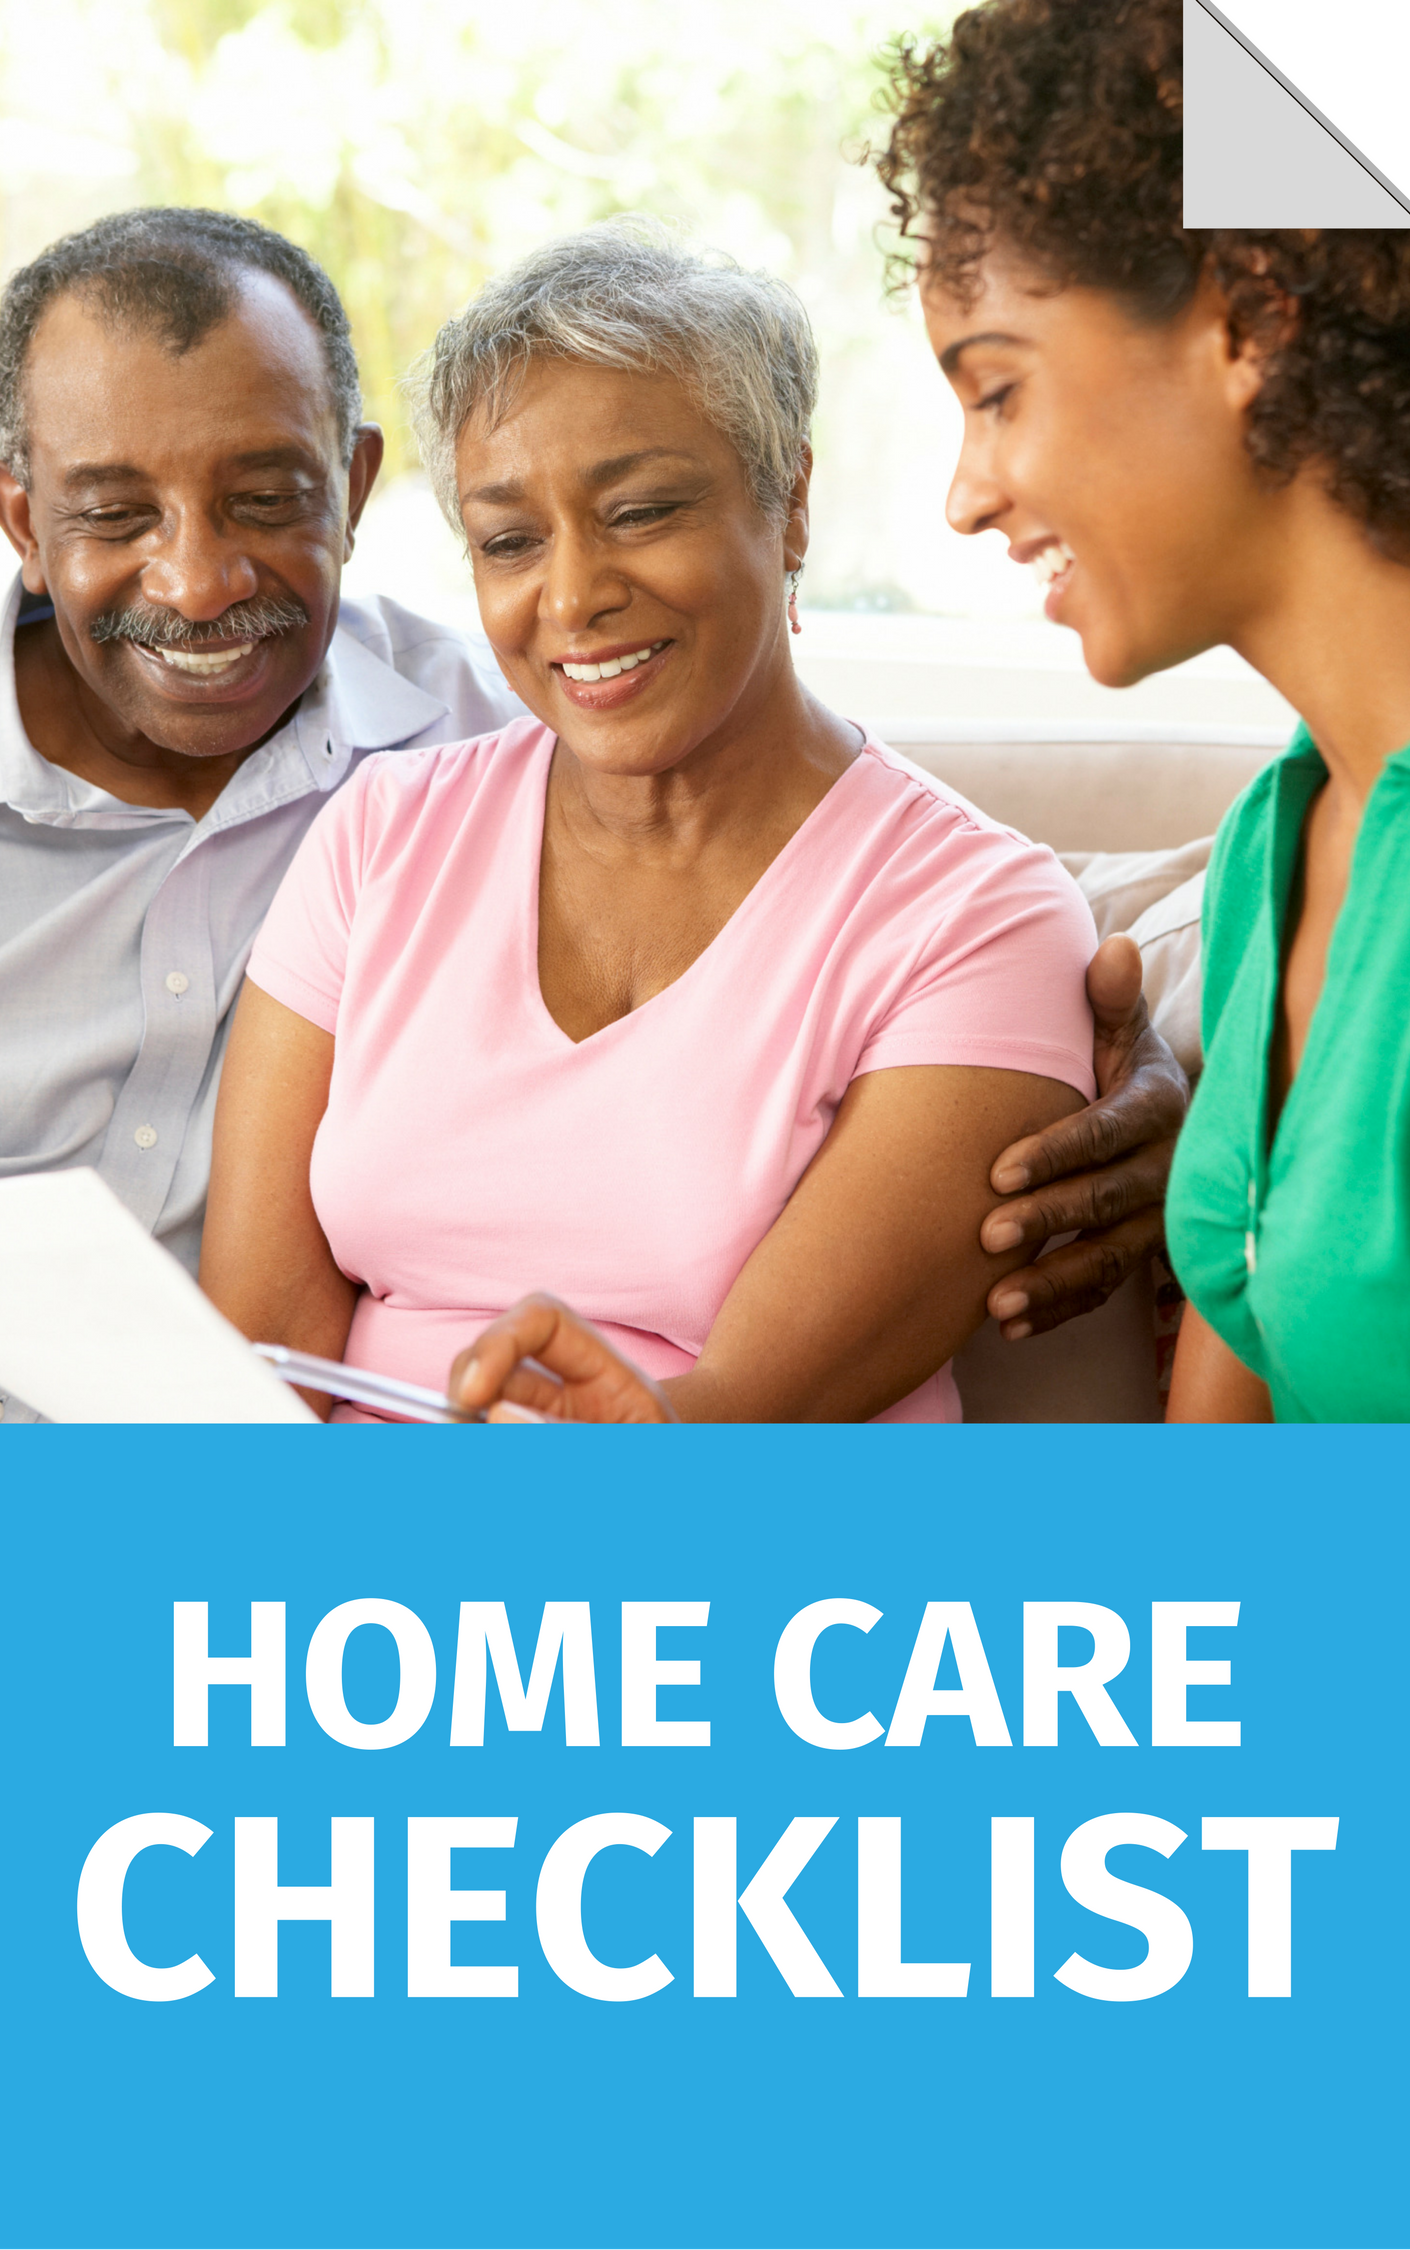 Home_care_checklist.png